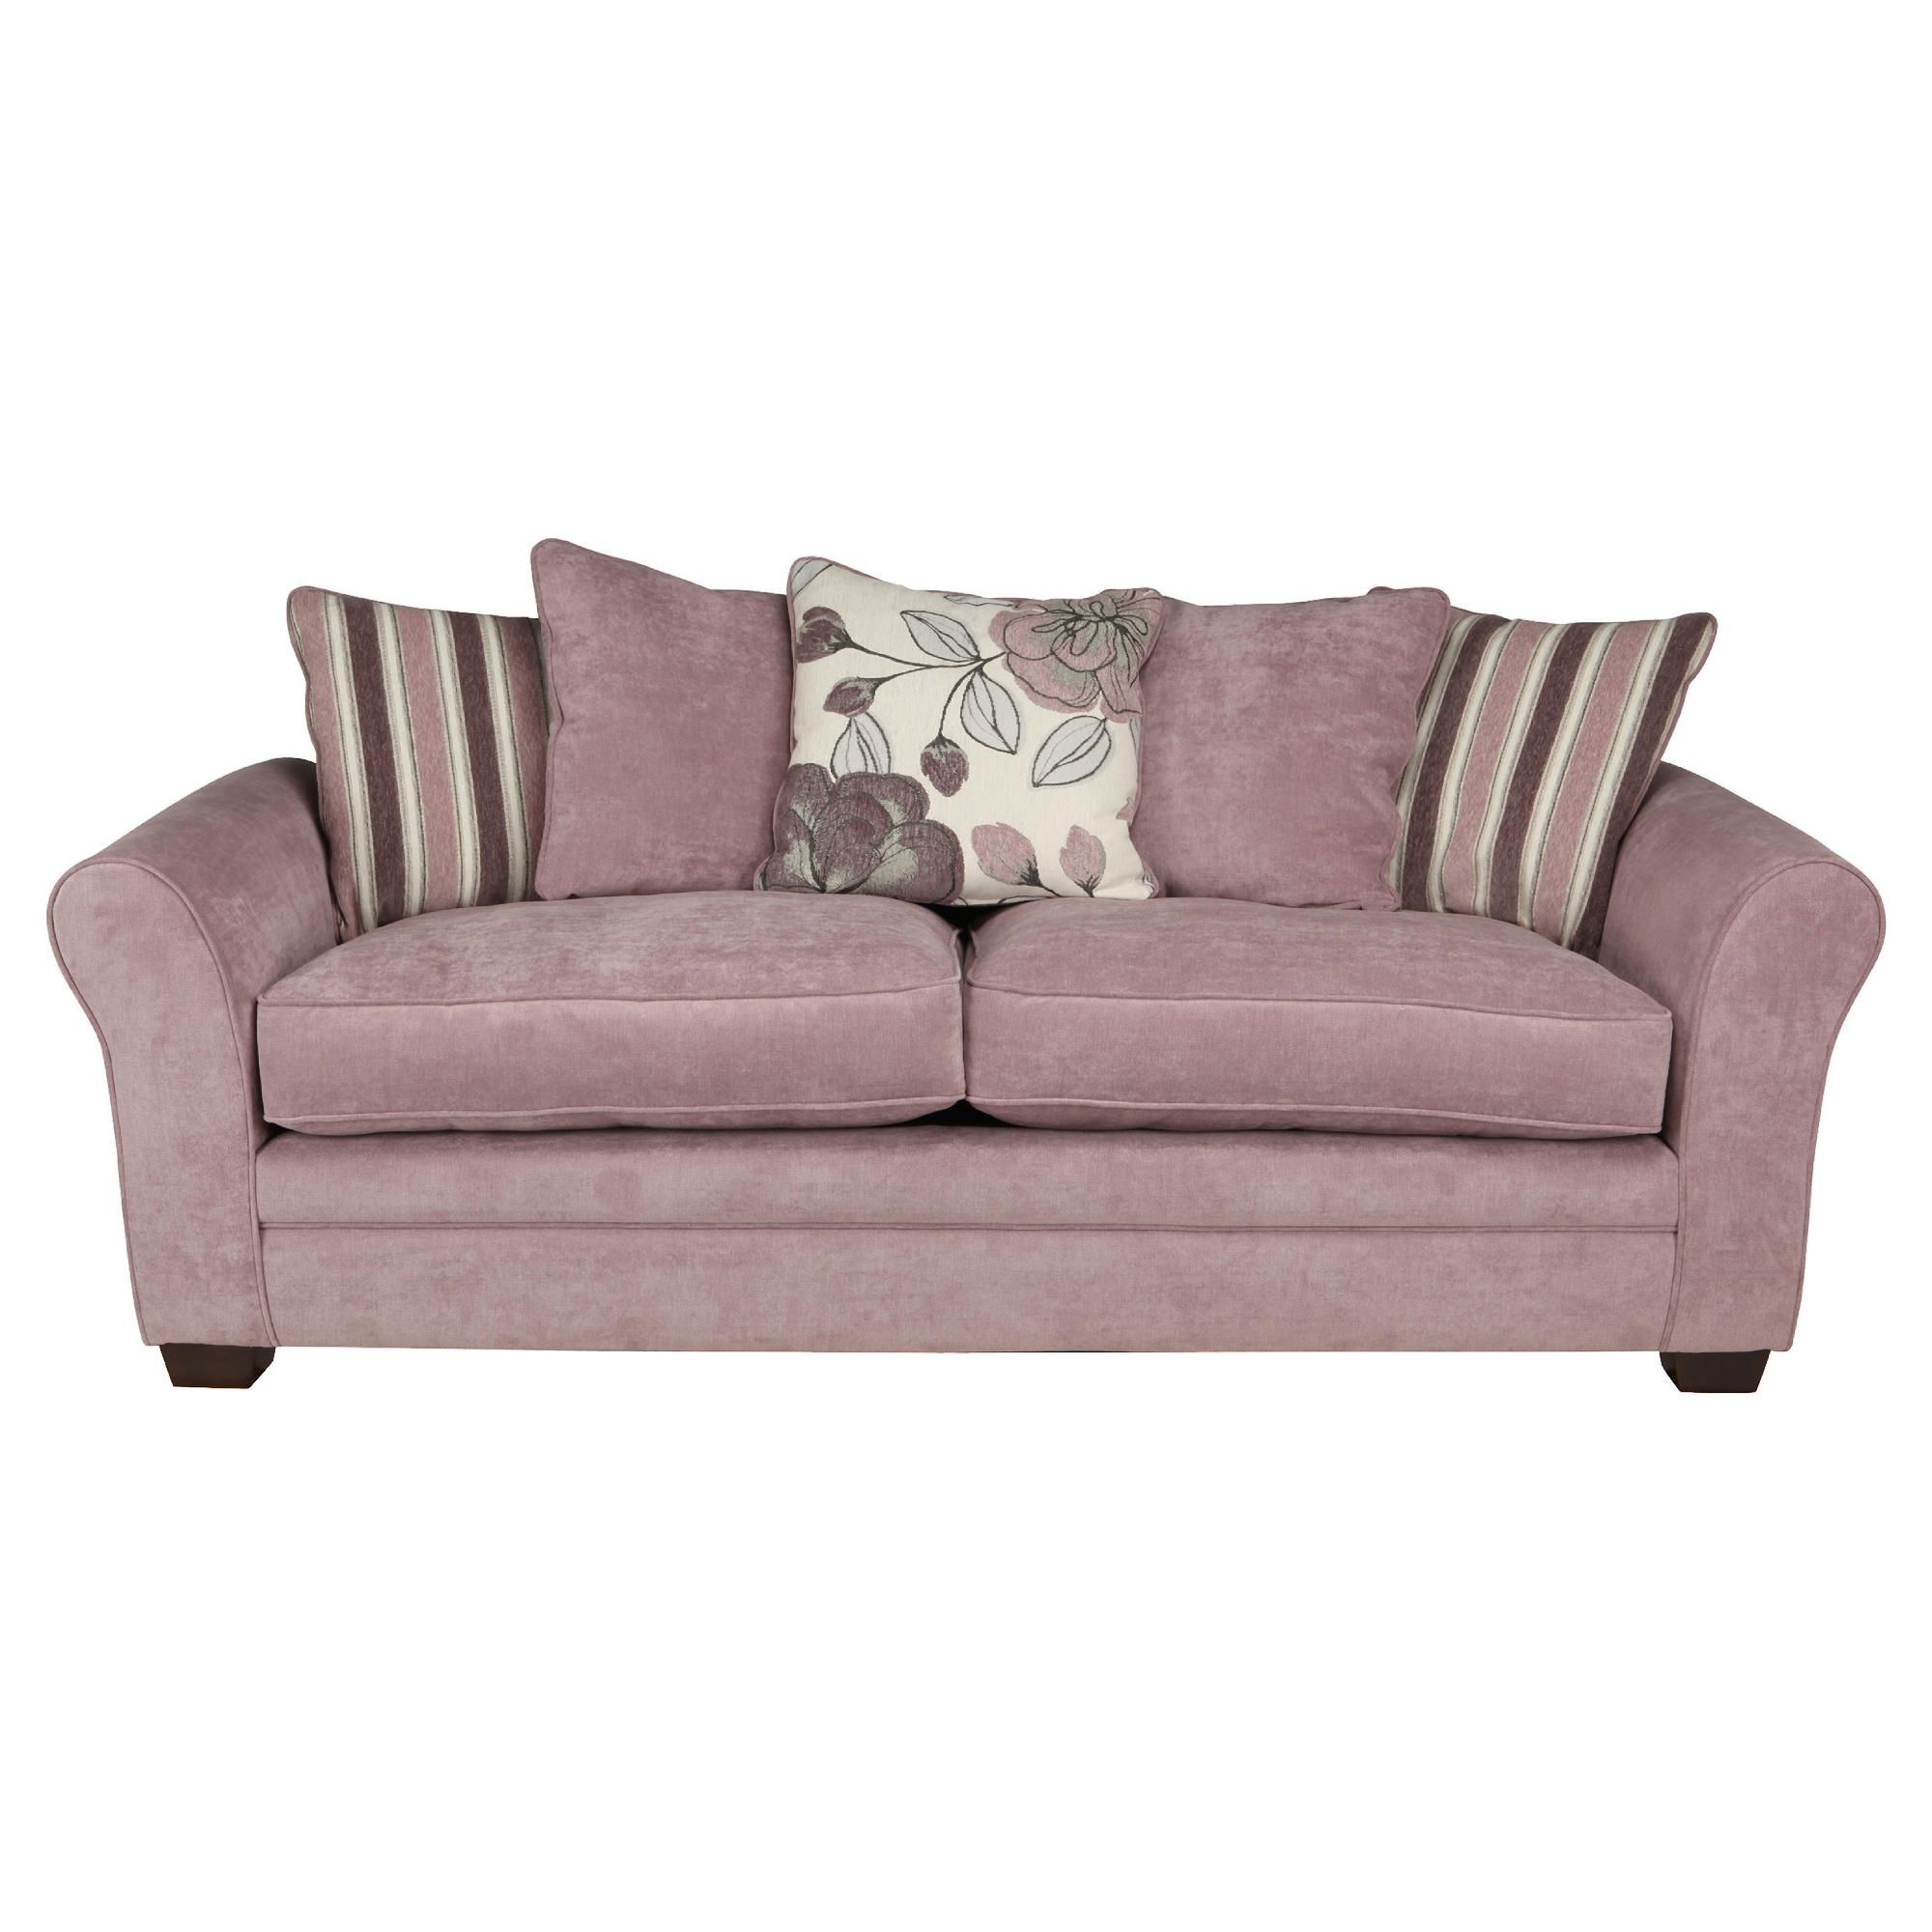 Amelie Large Fabric Sofa, Lilac at Tesco Direct